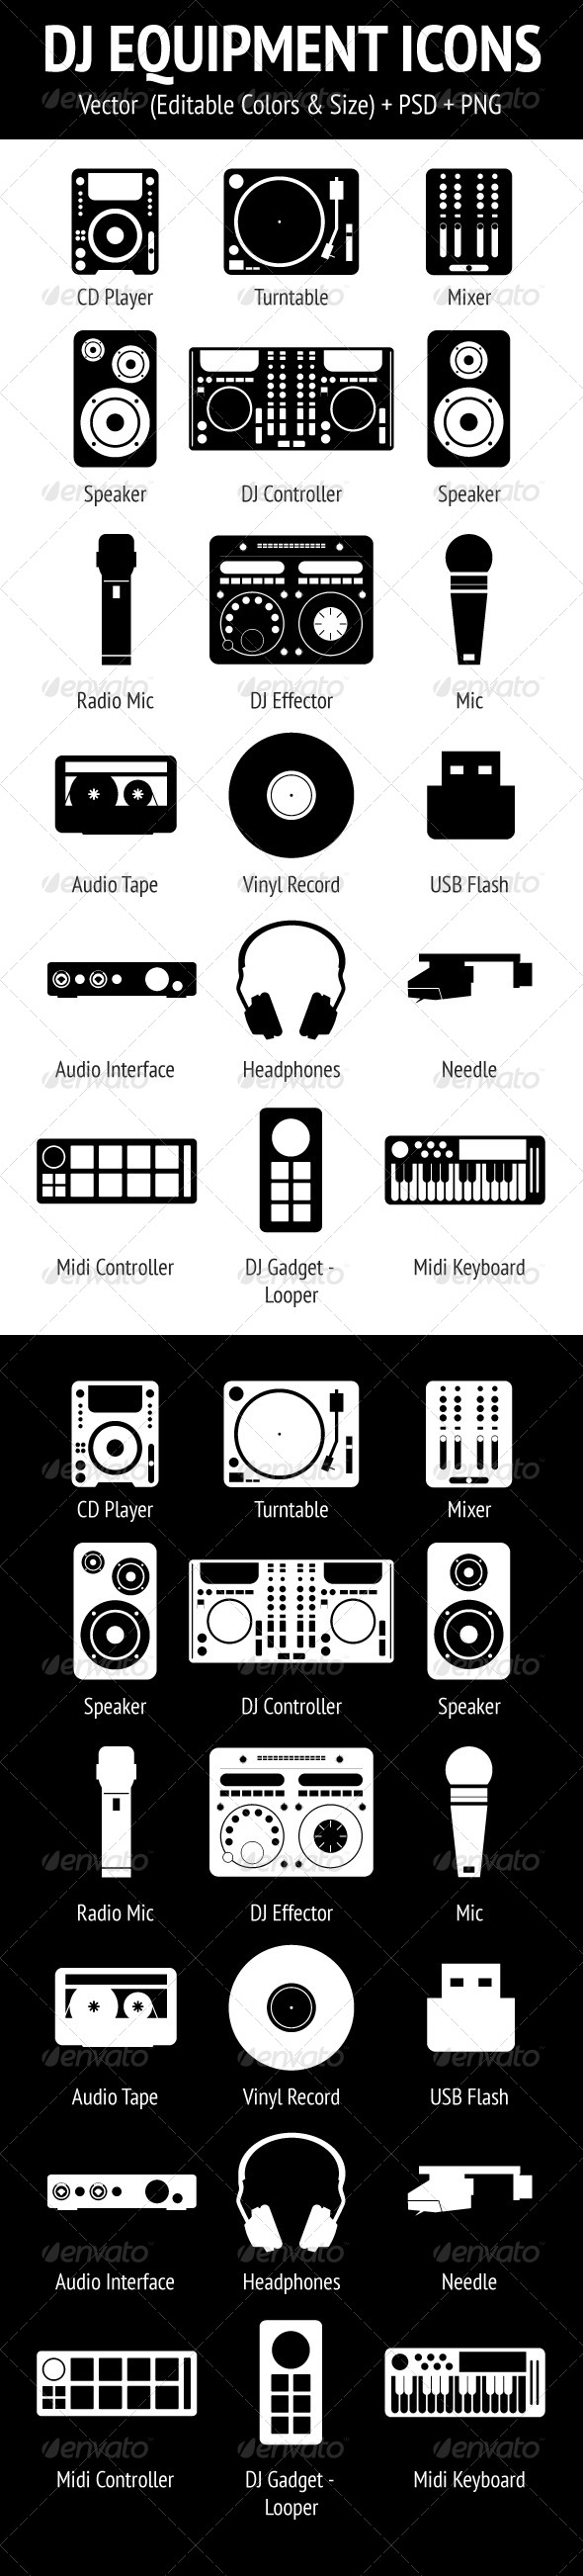 DJ Equipment Icons Set - Technology Icons